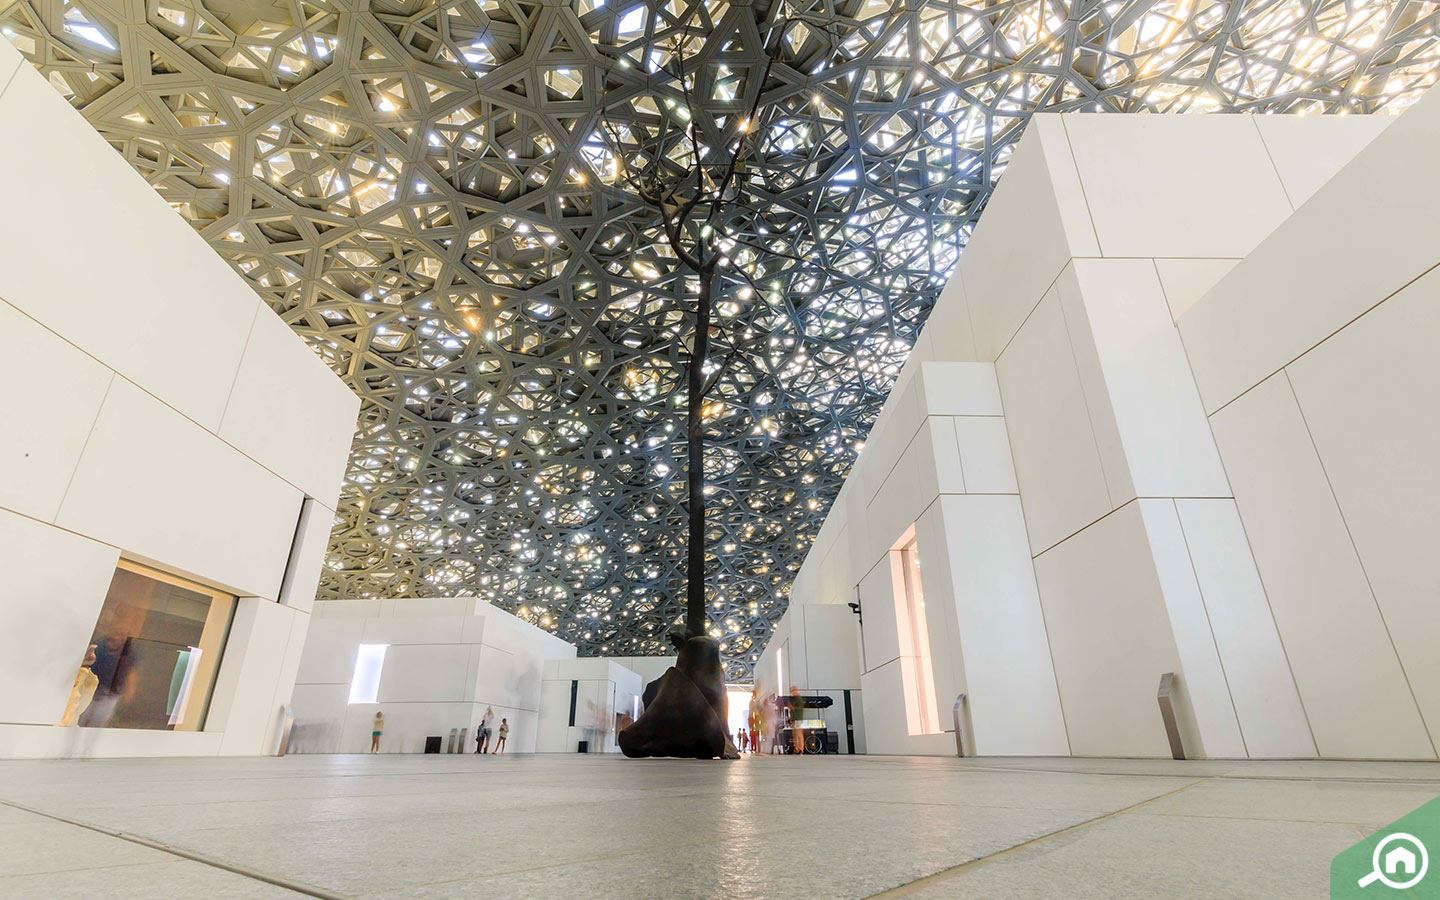 Leaves of Light - Installation at Louvre Abu Dhabi